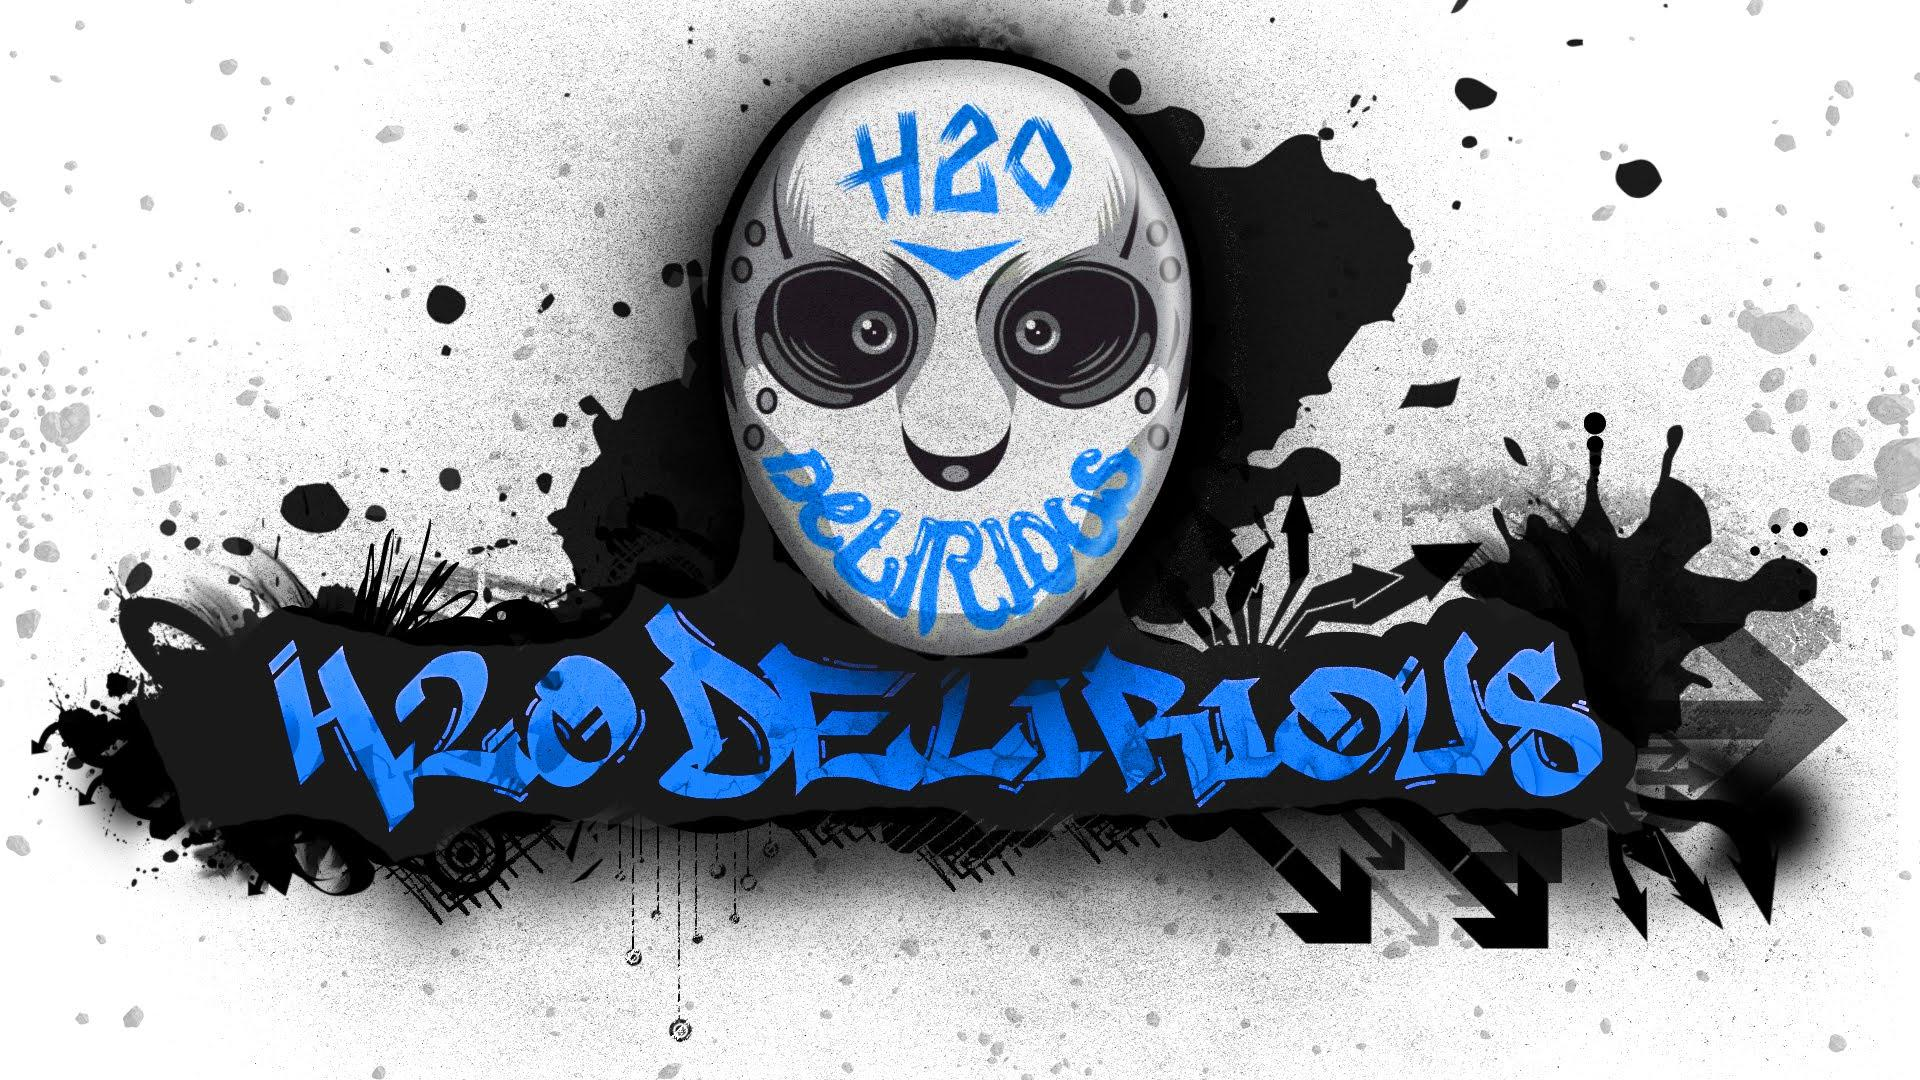 H2o delirious wallpaper bitcoins new jersey sports betting license coach